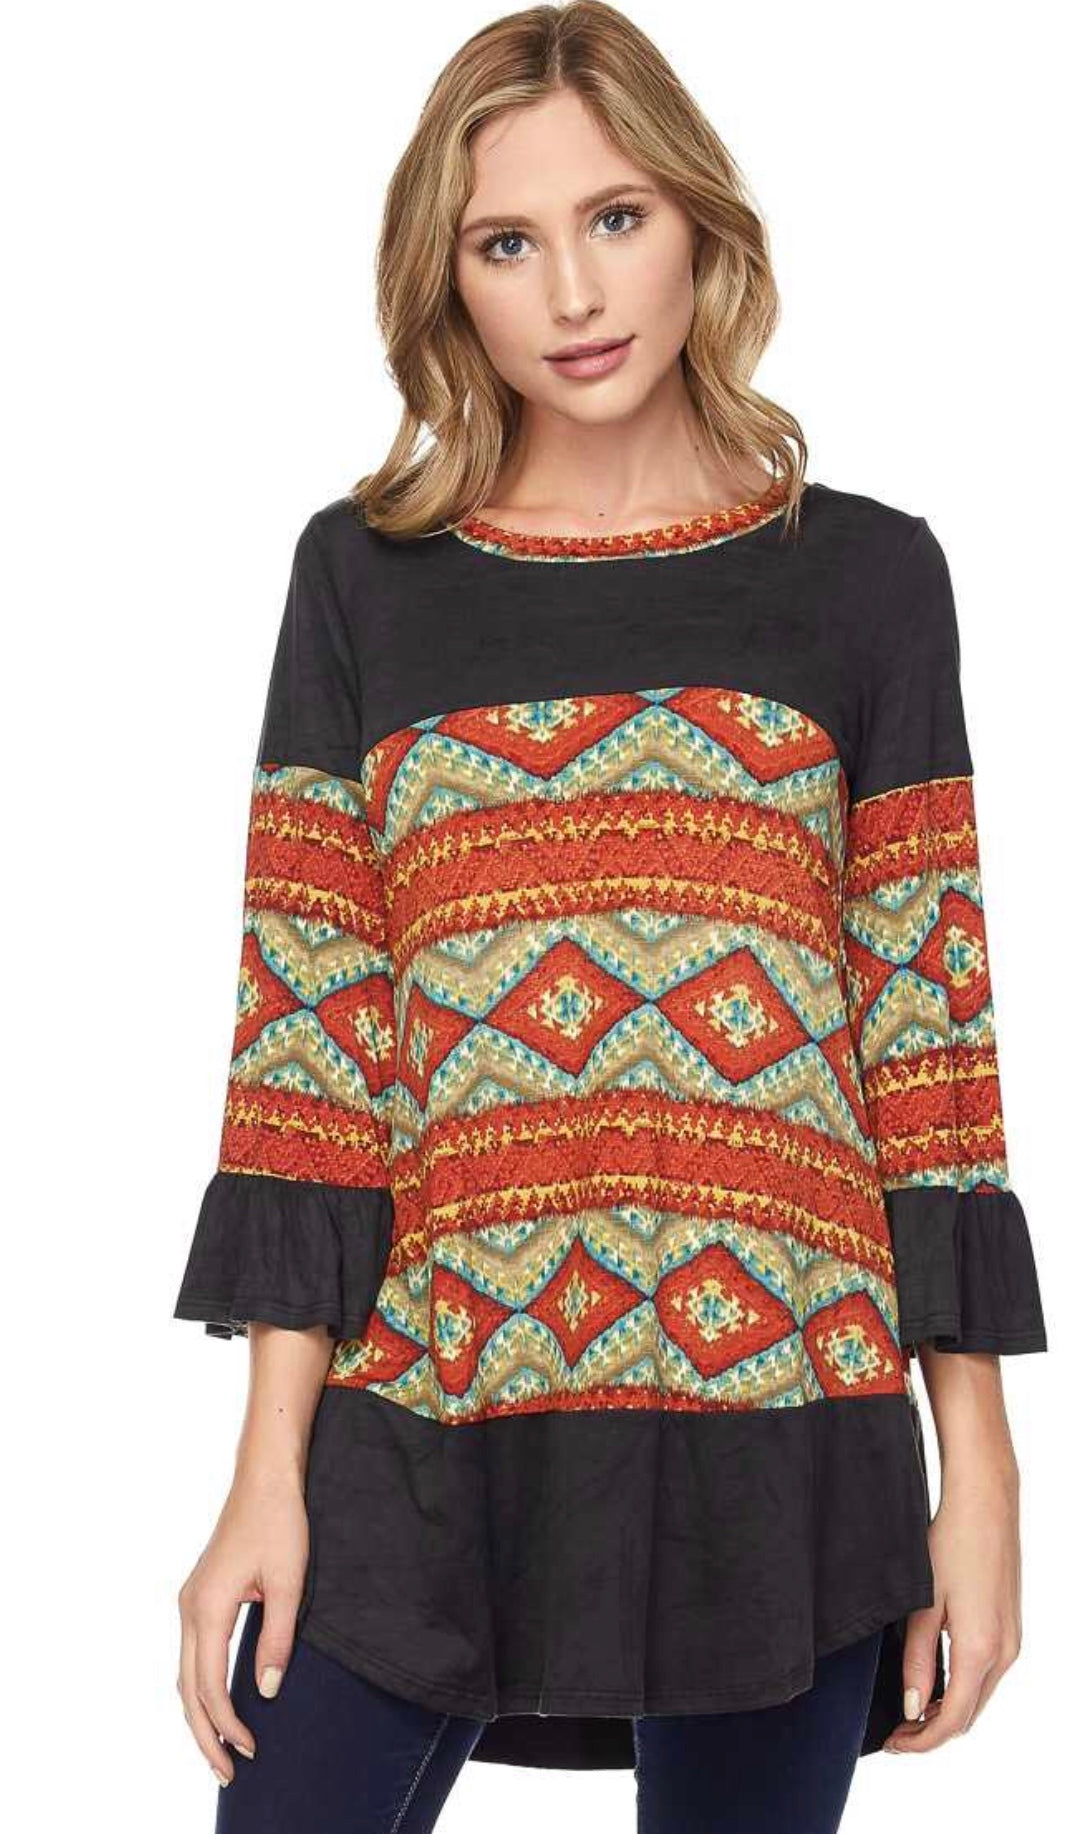 Aztec Tunic with Suede Accent